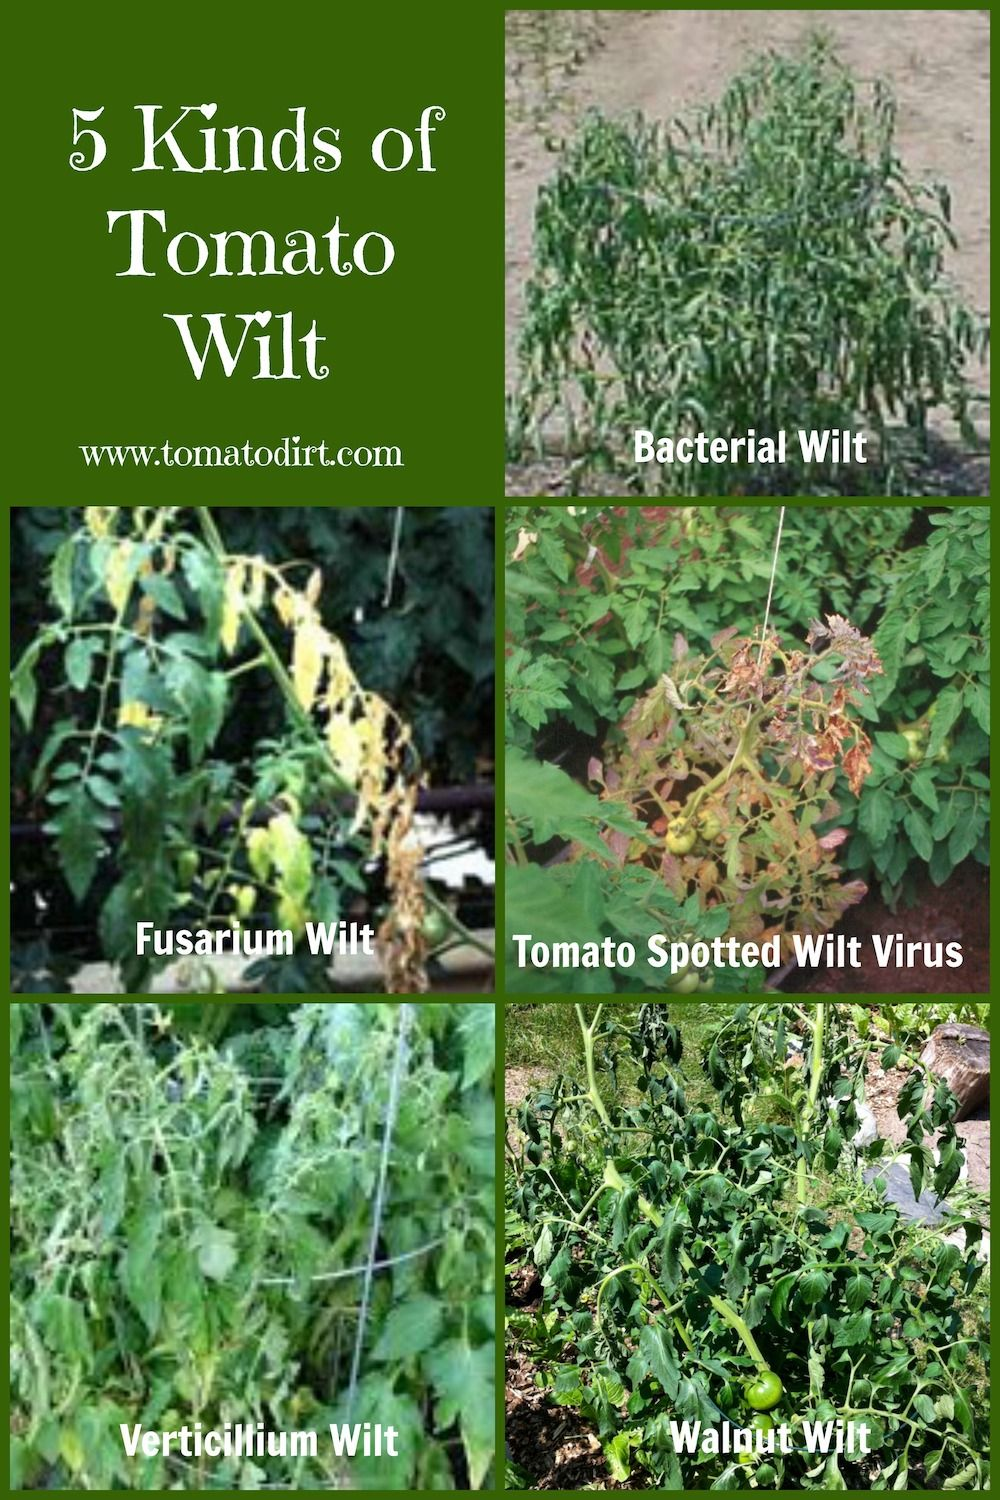 Compare 5 Kinds Of Tomato Wilt So You Can Identify And Treat Problems On Your Plants